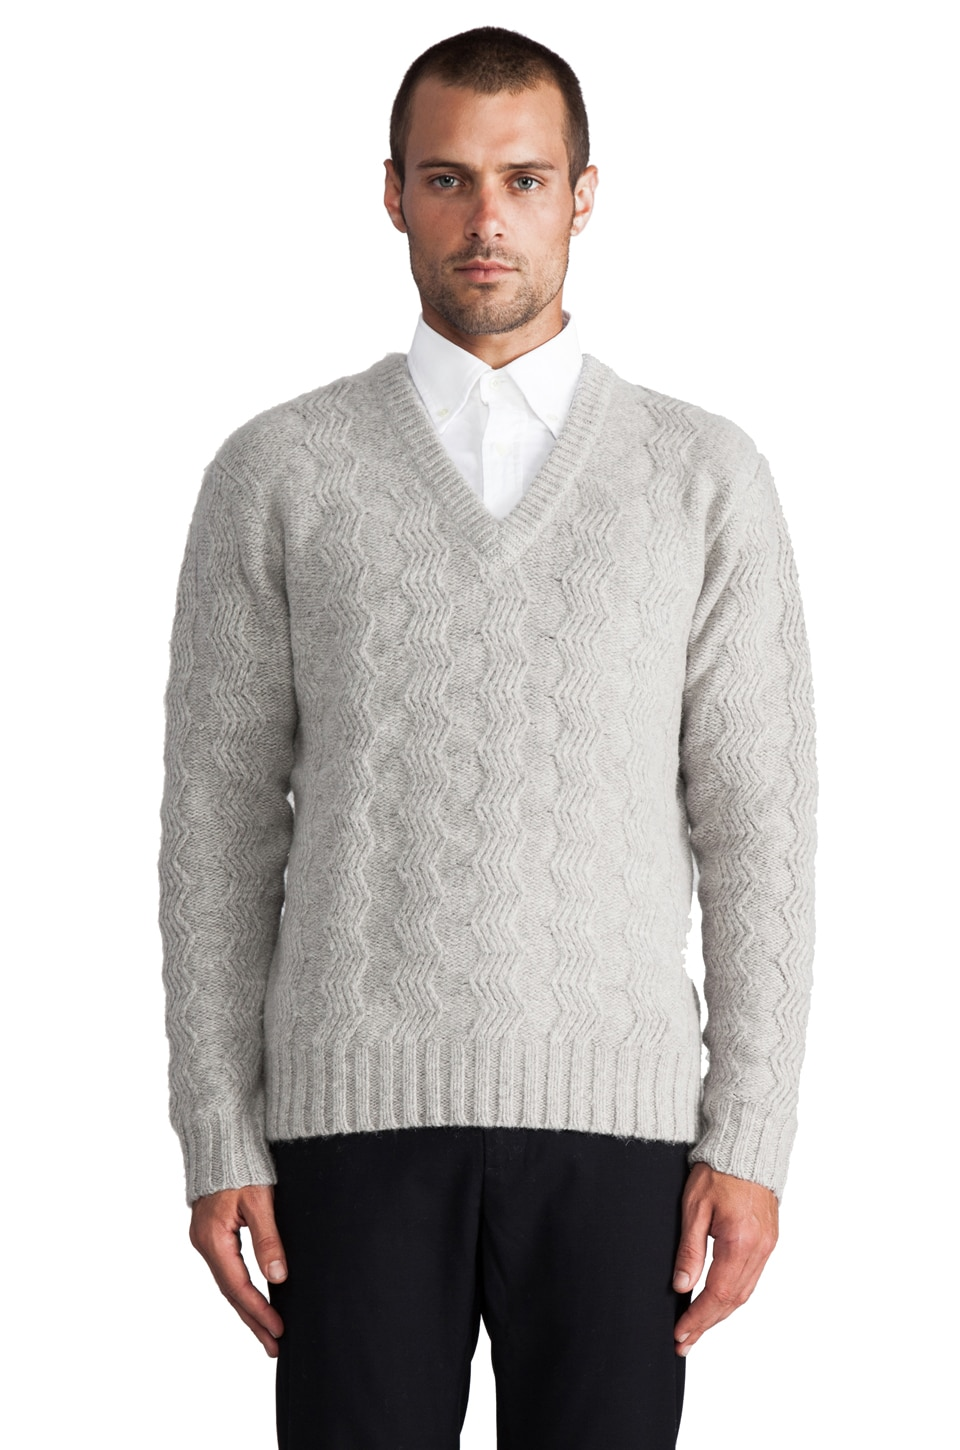 GANT Rugger Zig Sag Sweater in Light Grey Melange